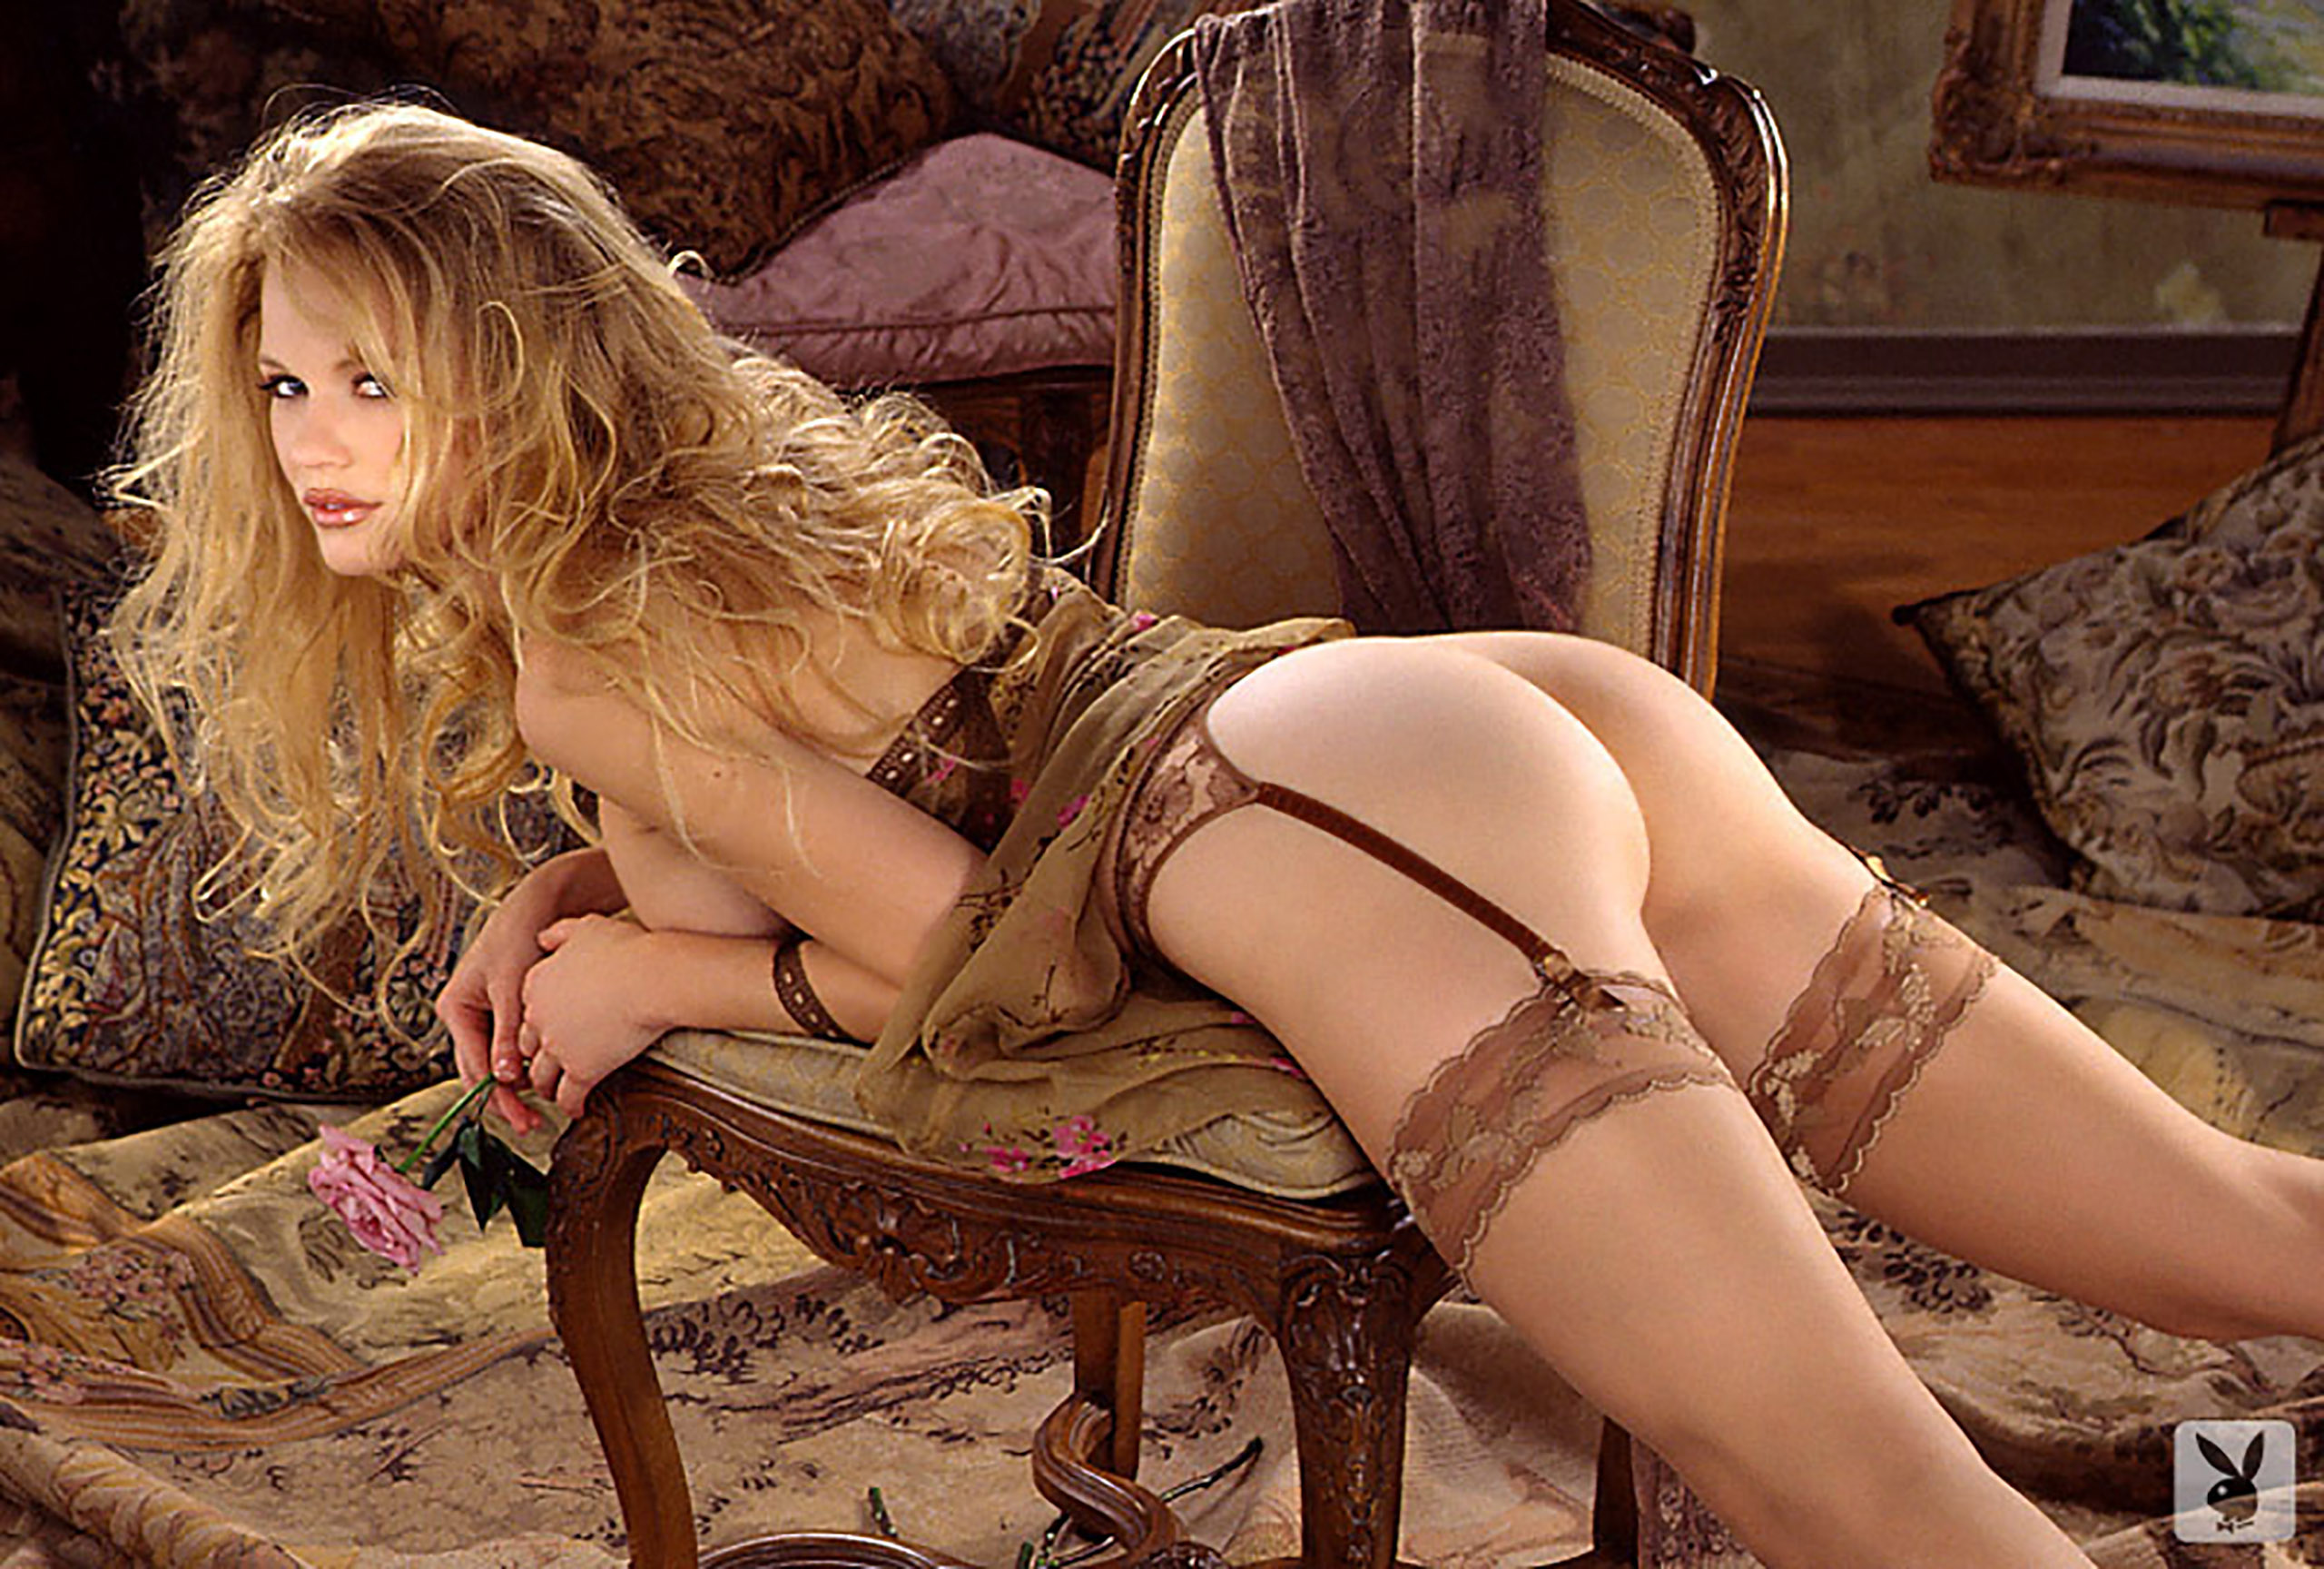 Ftop.ru » XXX walls » Shannon Tweed, playboy, playmate, nude, girl ...